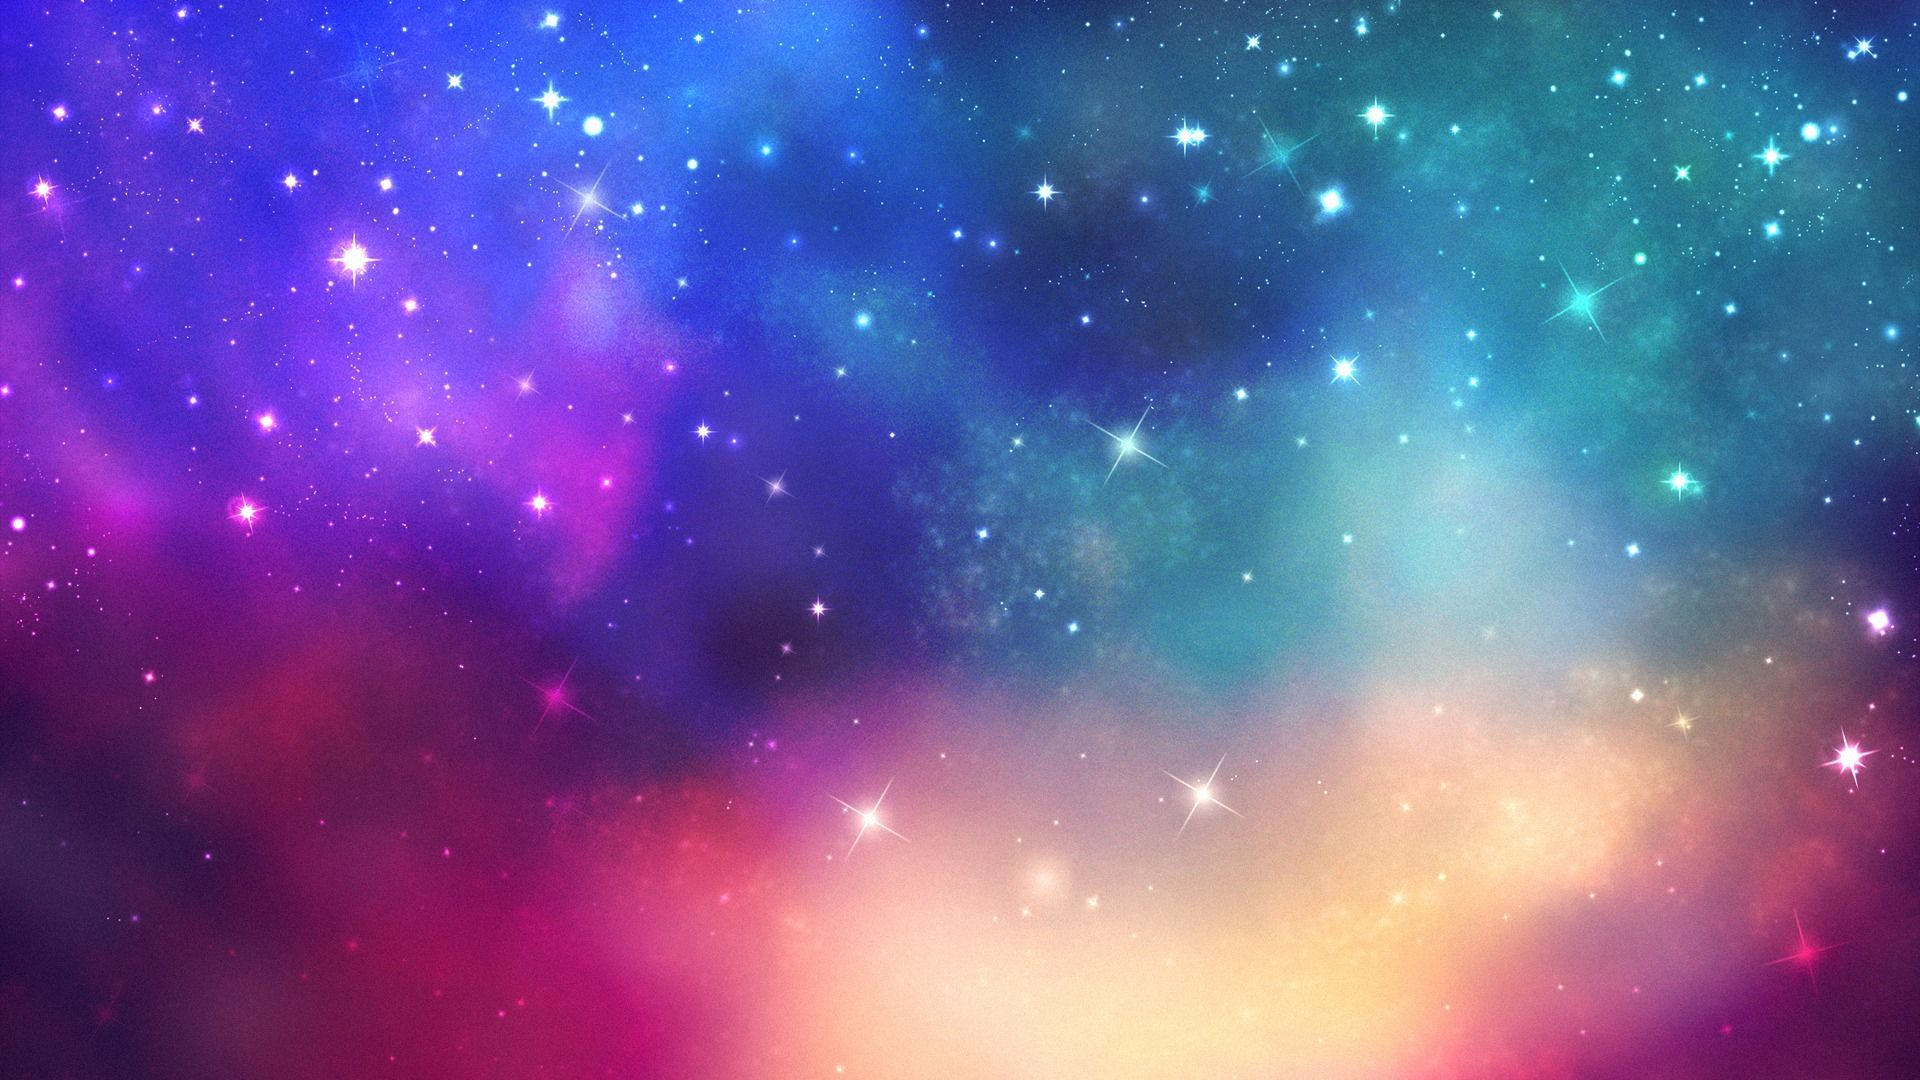 stars wallpapers backgrounds images - photo #16